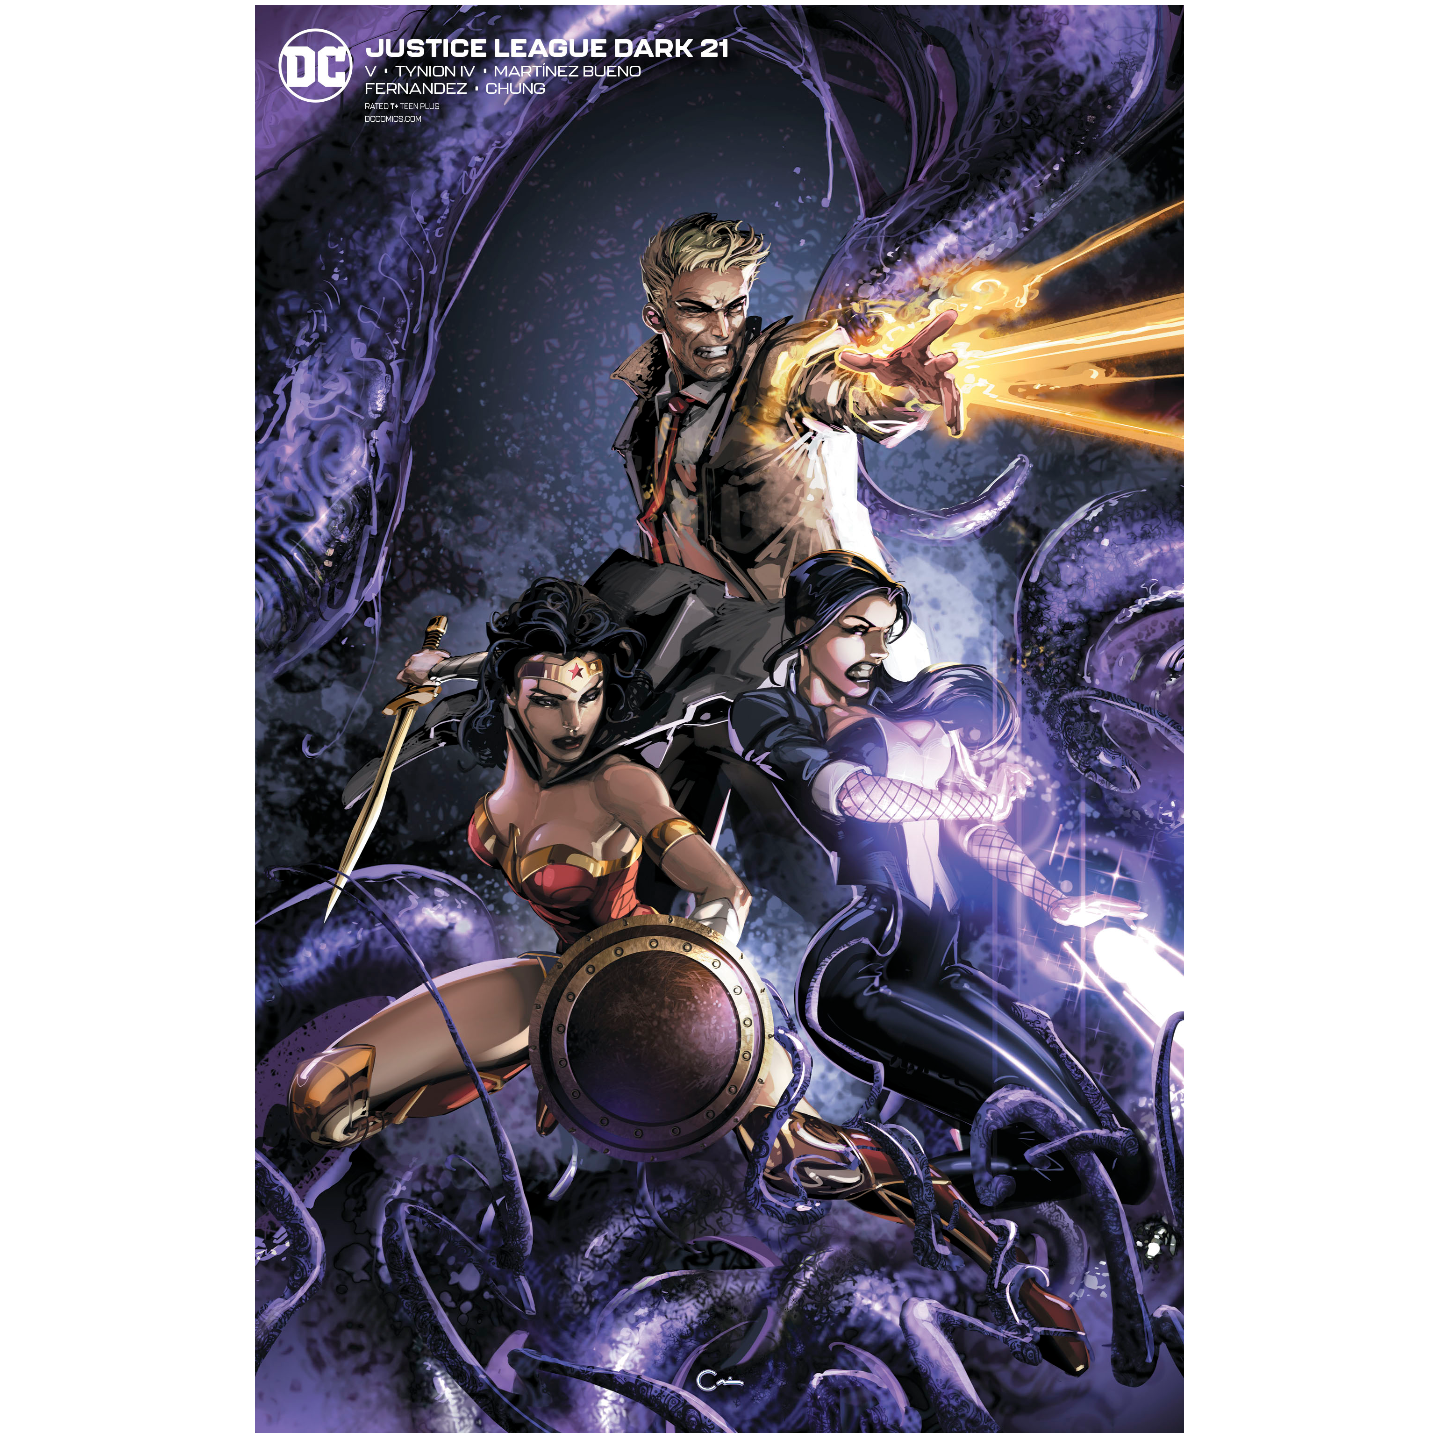 JUSTICE LEAGUE DARK 21 CLAYTON CRAIN VAR ED